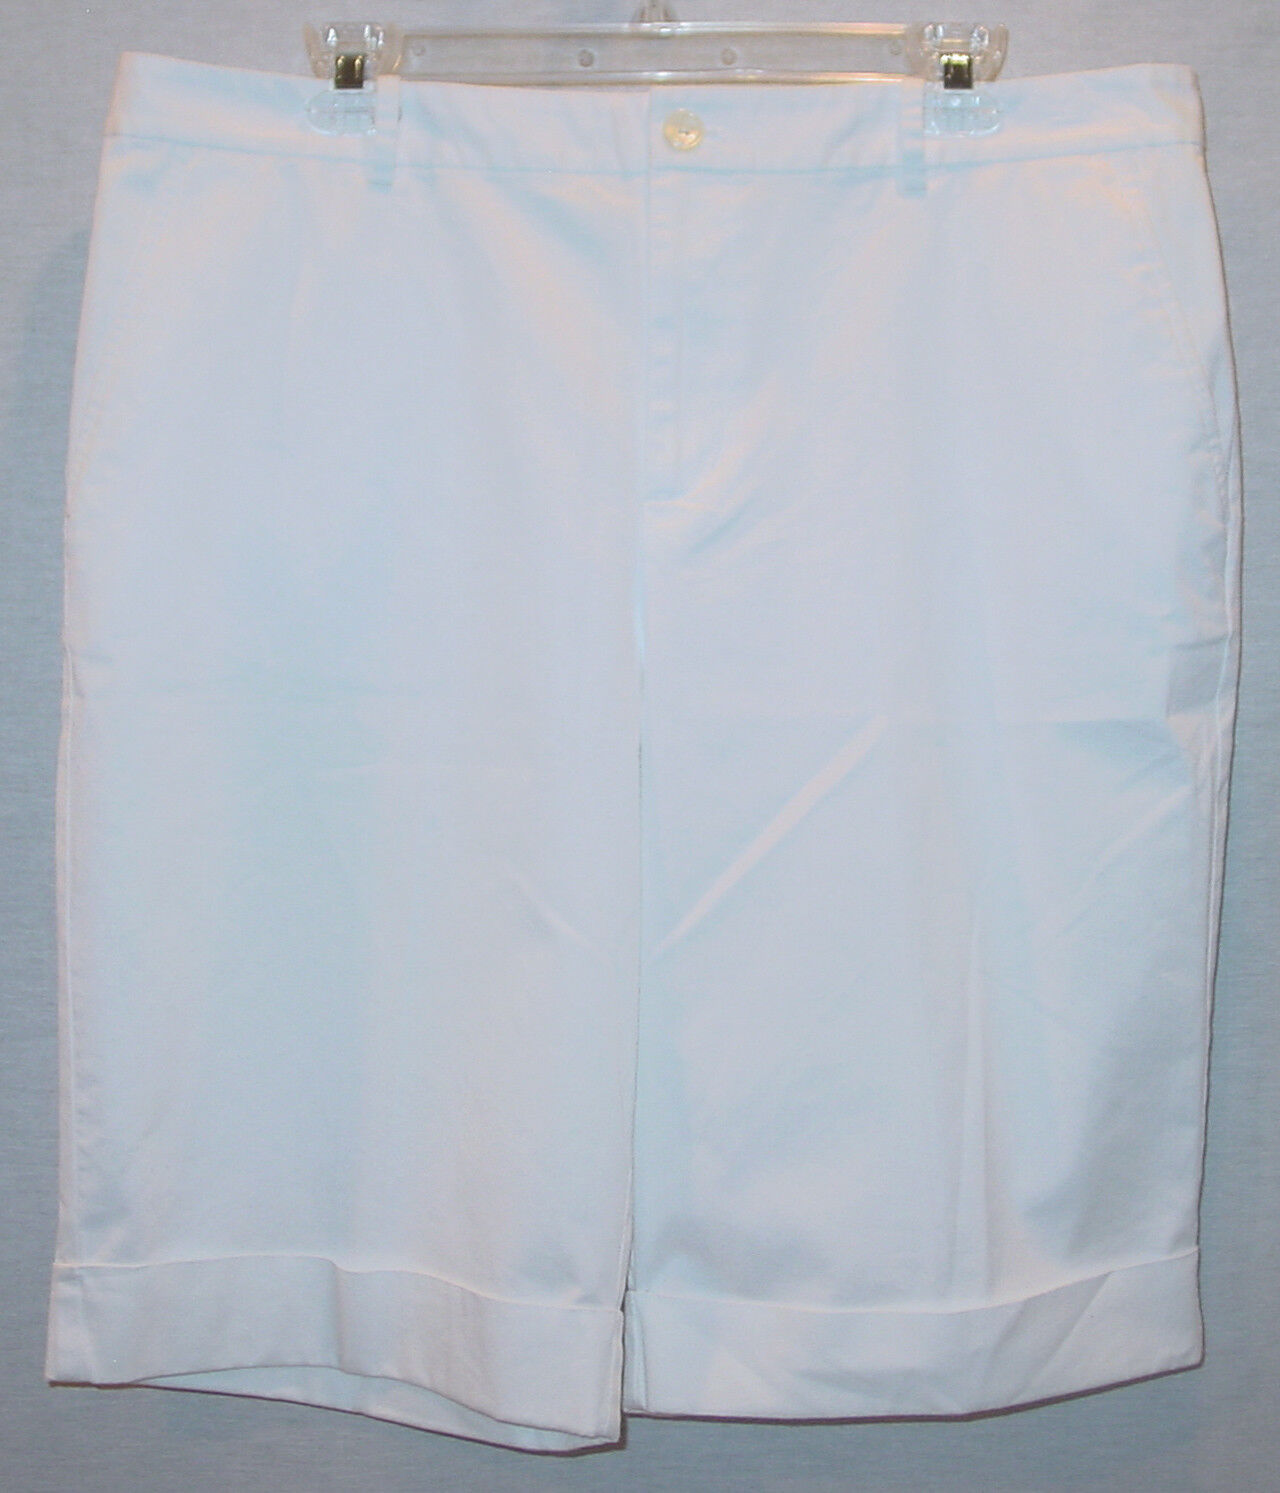 RALPH LAUREN LADIES WHITE BERMUDA   WALKING SHORTS NEW WITH TAGS